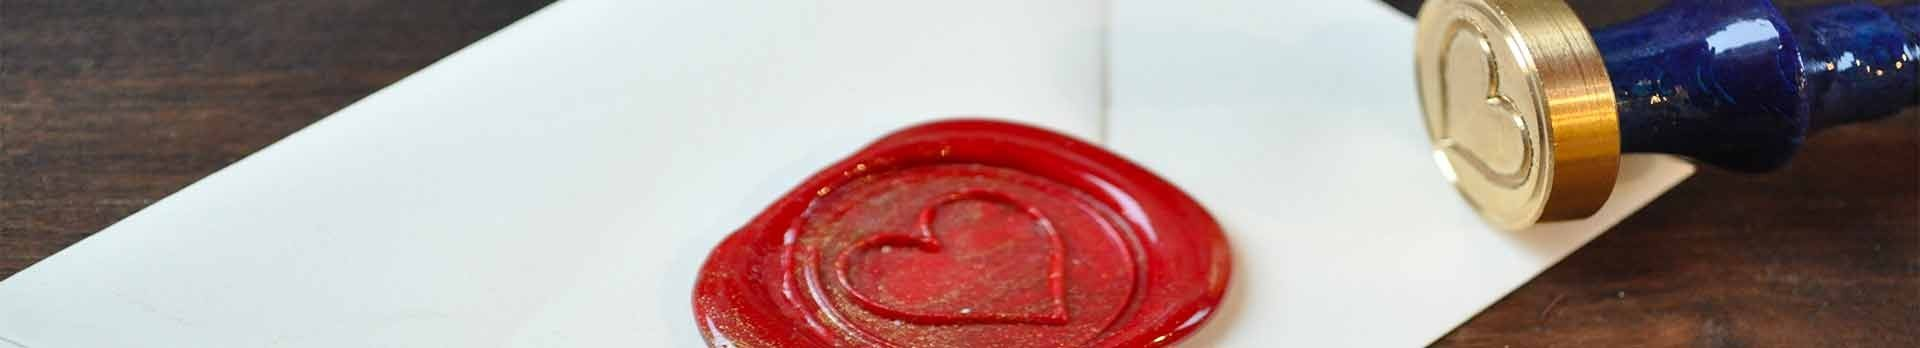 Symbol wax seal stamps - Made in France - L'Ecritoire Paris stationery